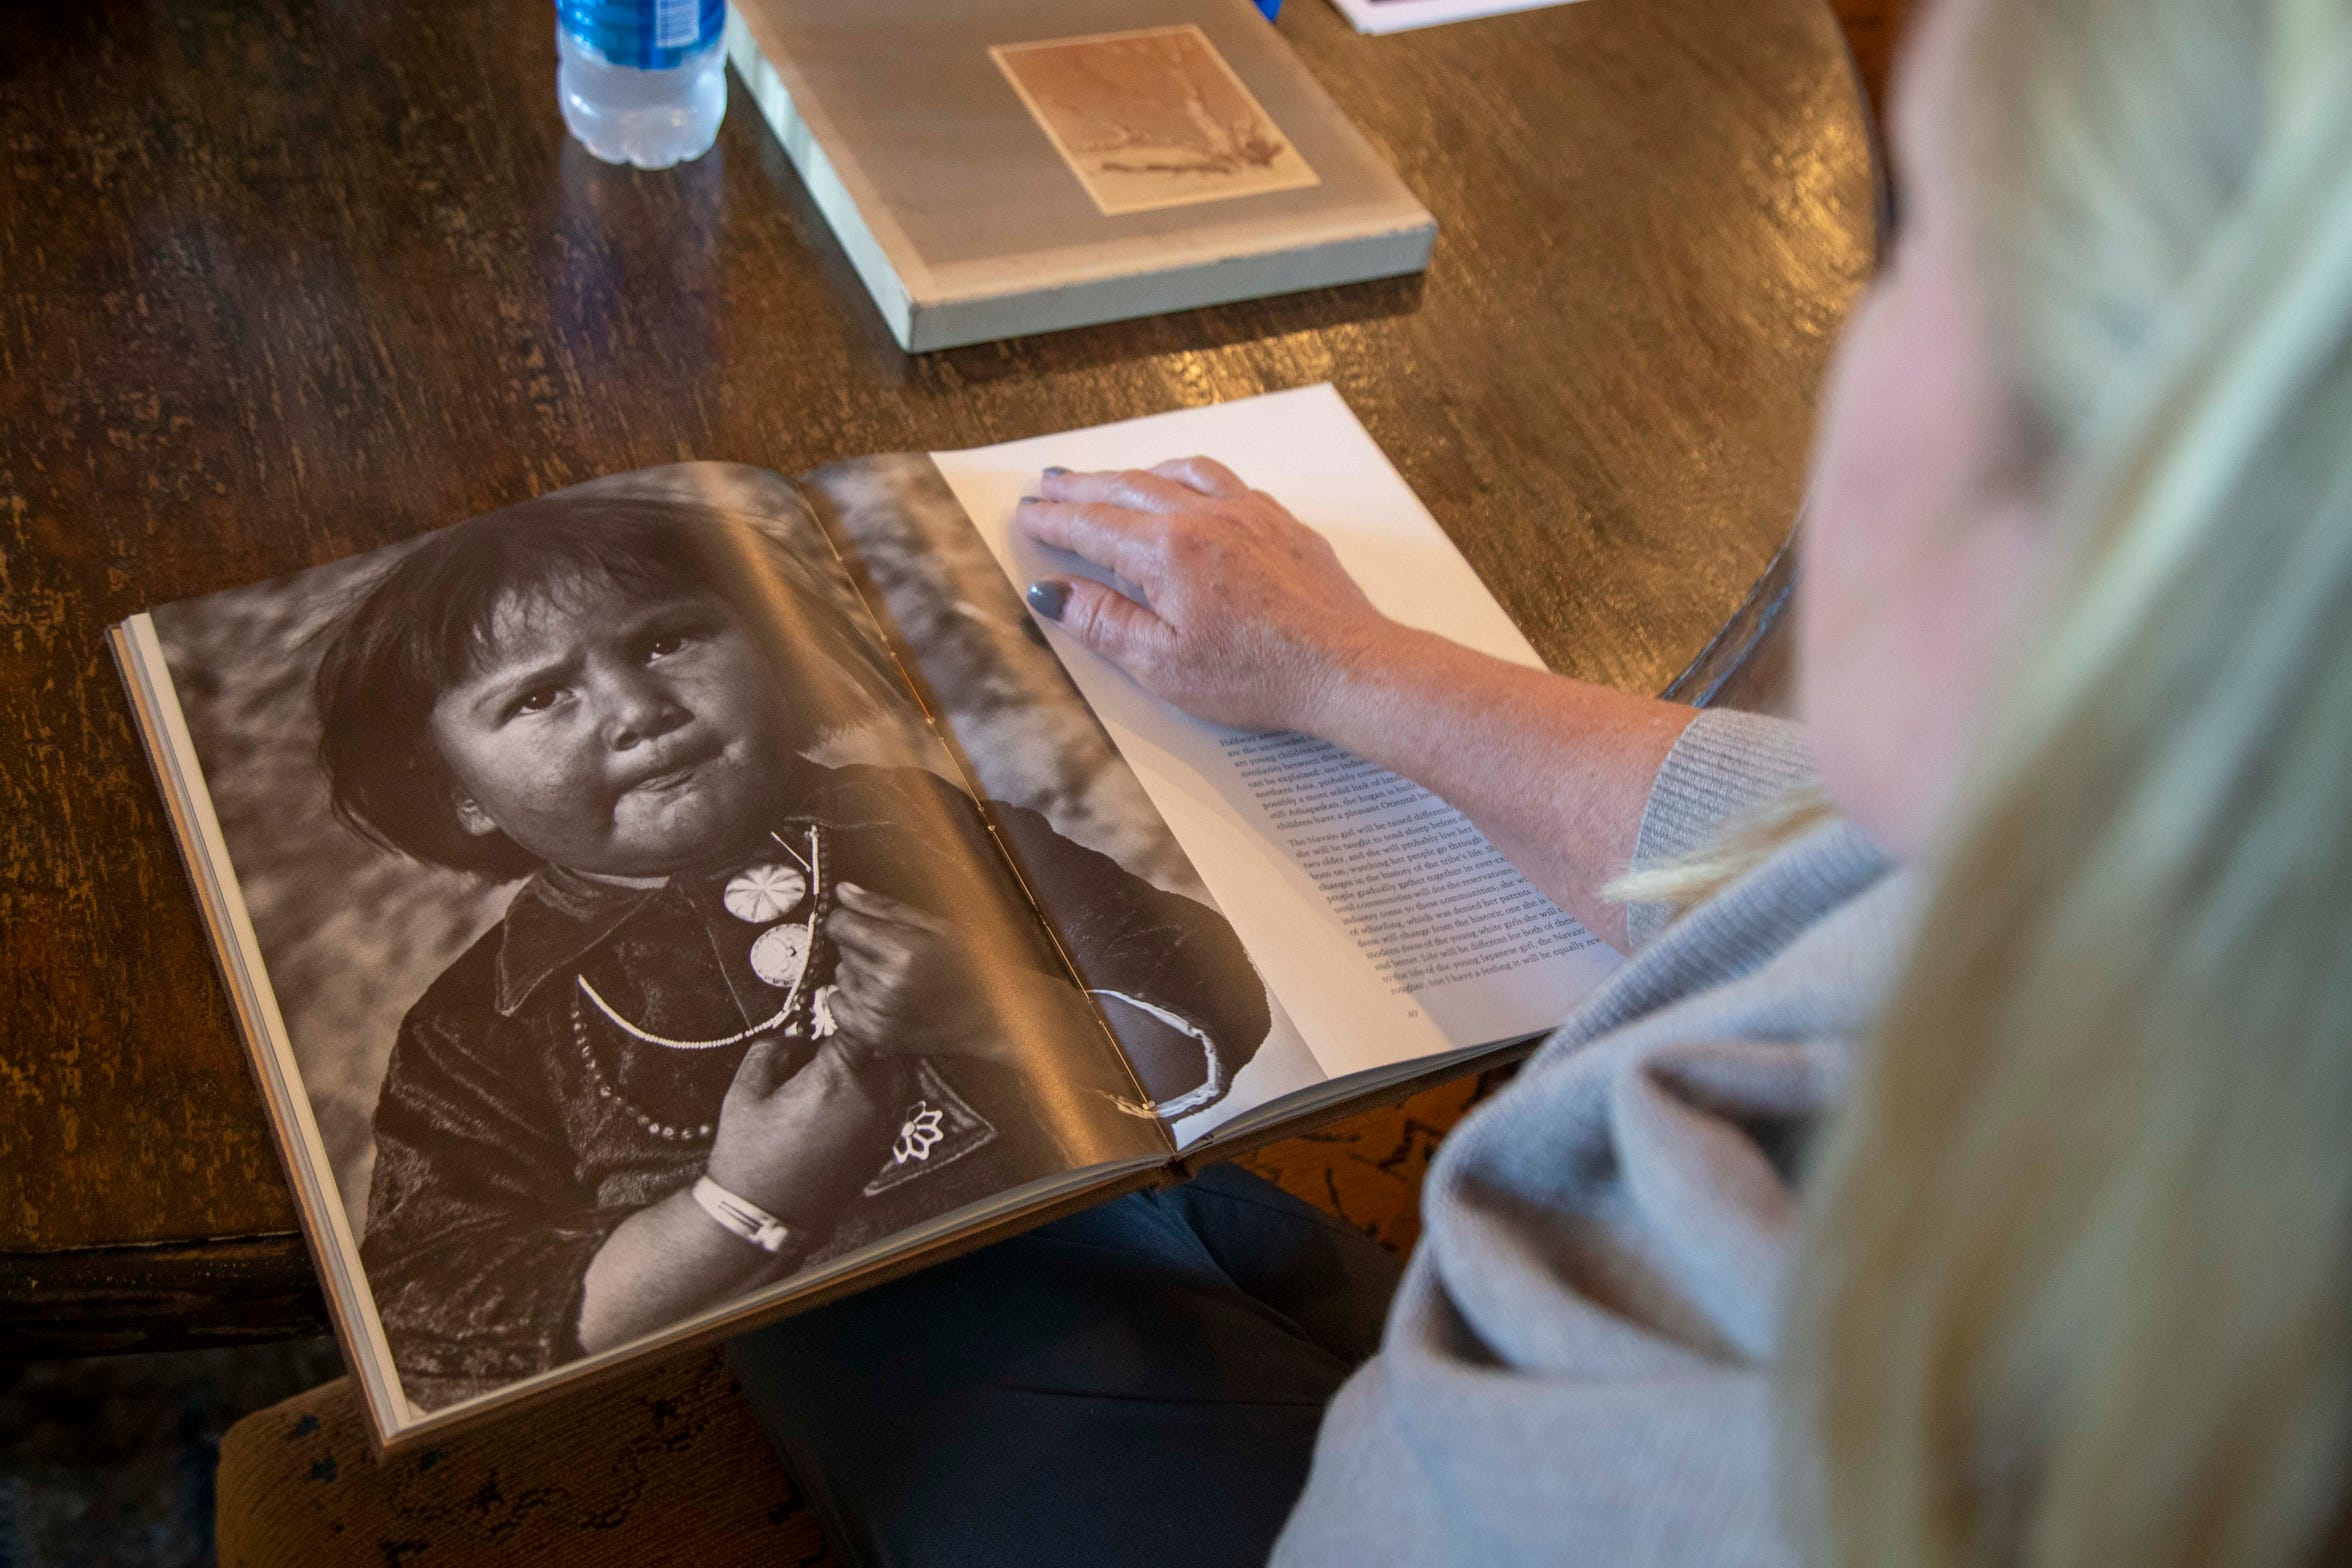 Alison Goldwater shows a photograph of natives taken by her grandfather Barry Goldwater. Alison Goldwater and her family is getting ready to release an archive of photos taken by Barry Goldwater throughout his life and created a library and foundation to honor his legacy.